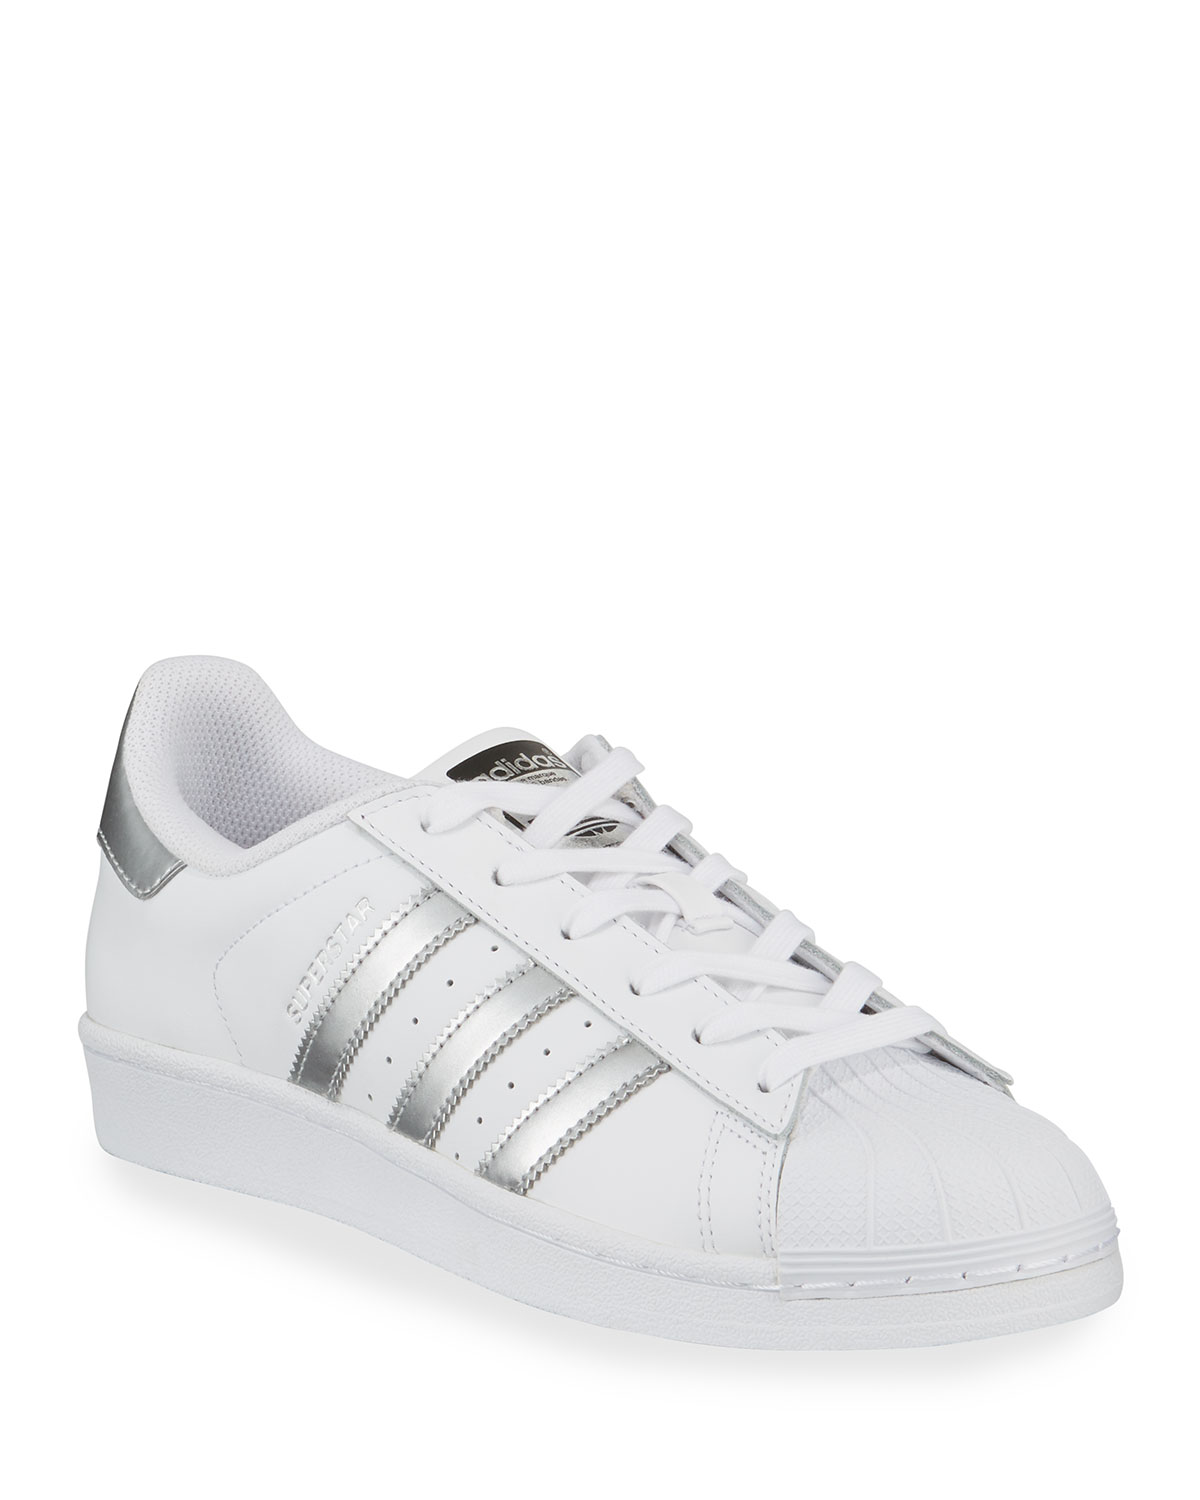 1e443e48b2c Adidas Superstar Original Fashion Sneakers